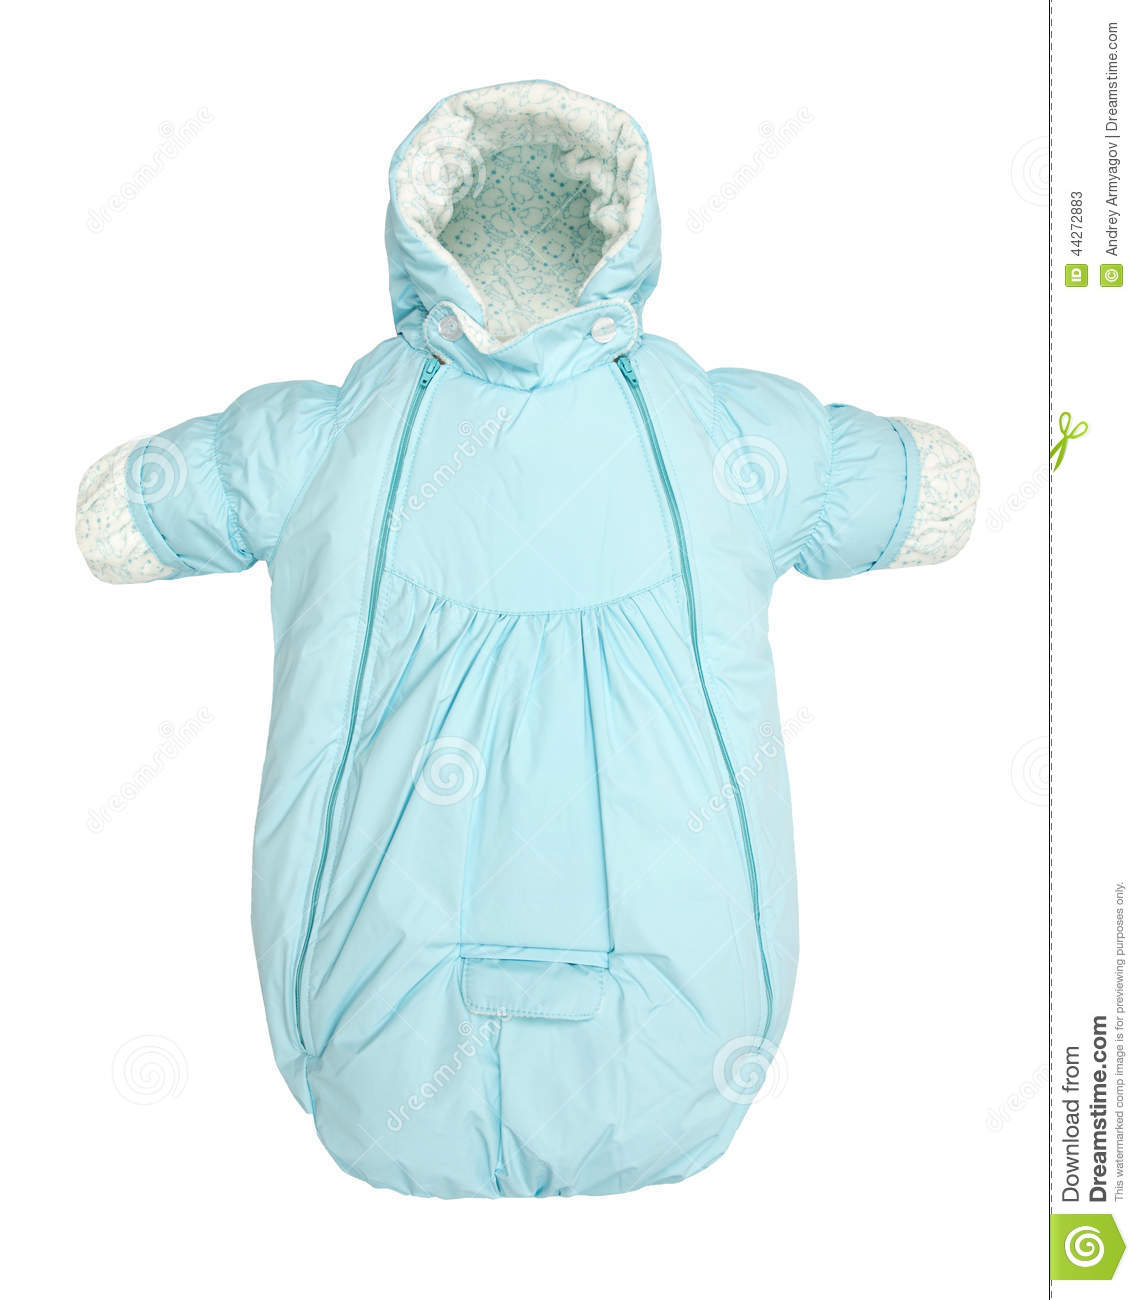 Baby Snowsuit Bag Stock Image Image Of Little Clothing